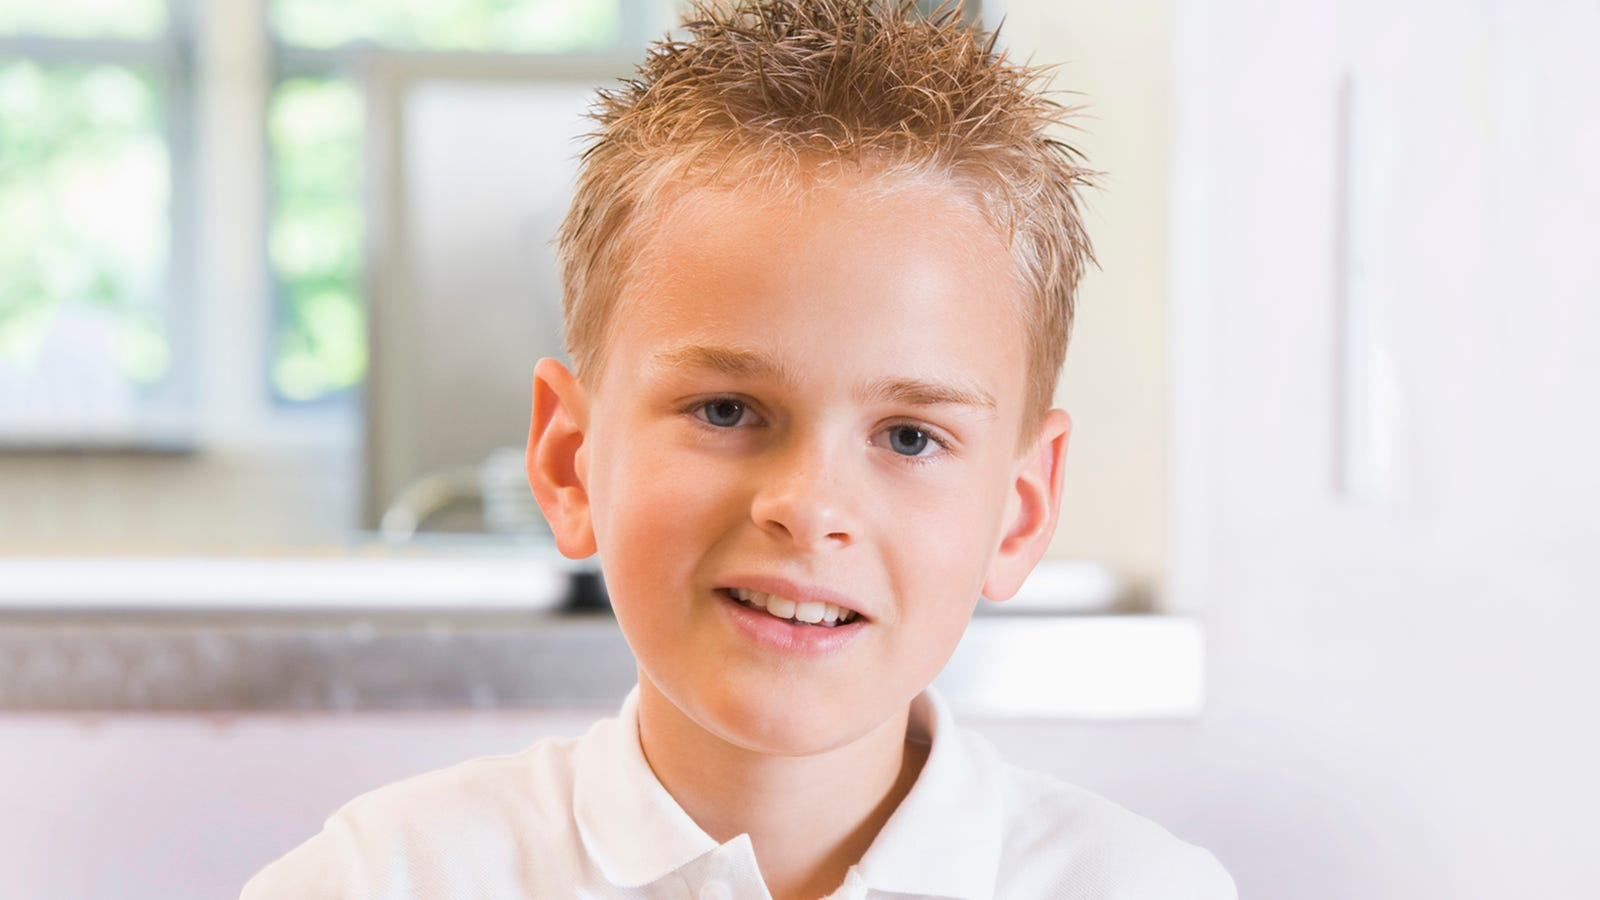 Kid With Massive Head Probably Psychic